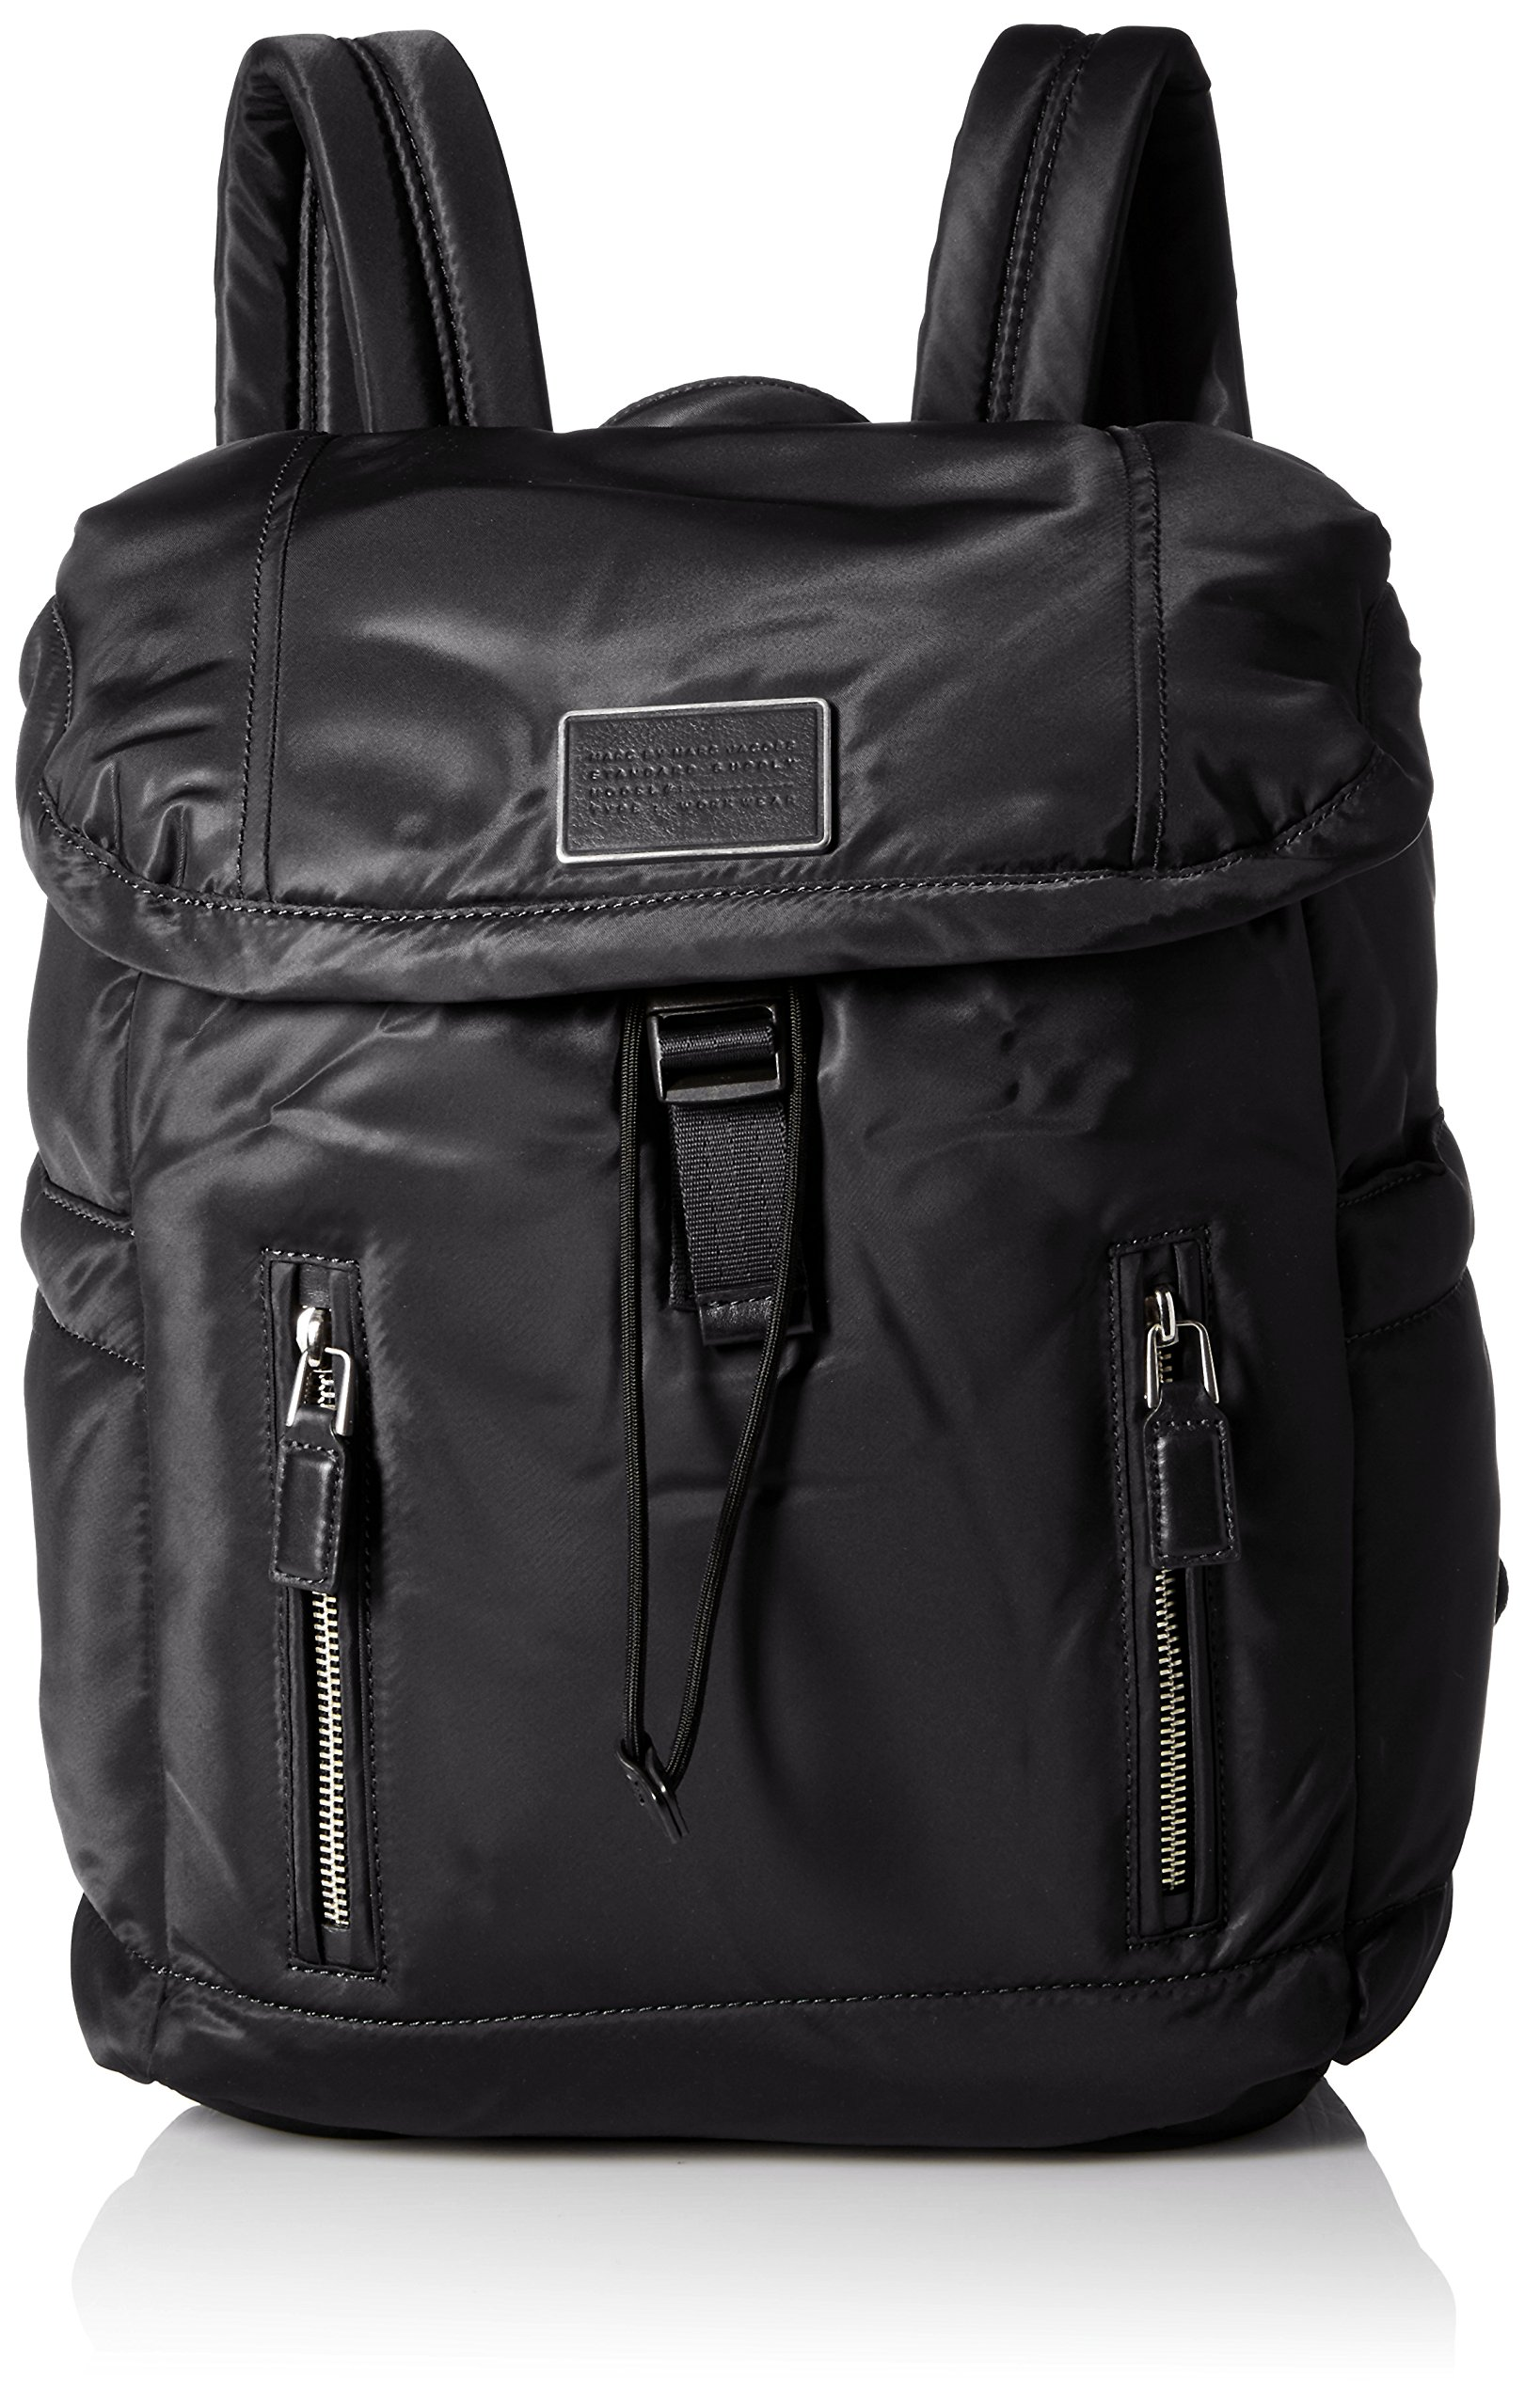 Marc by Marc Jacobs Palma Drawstring Backpack Handbag, Black, One Size